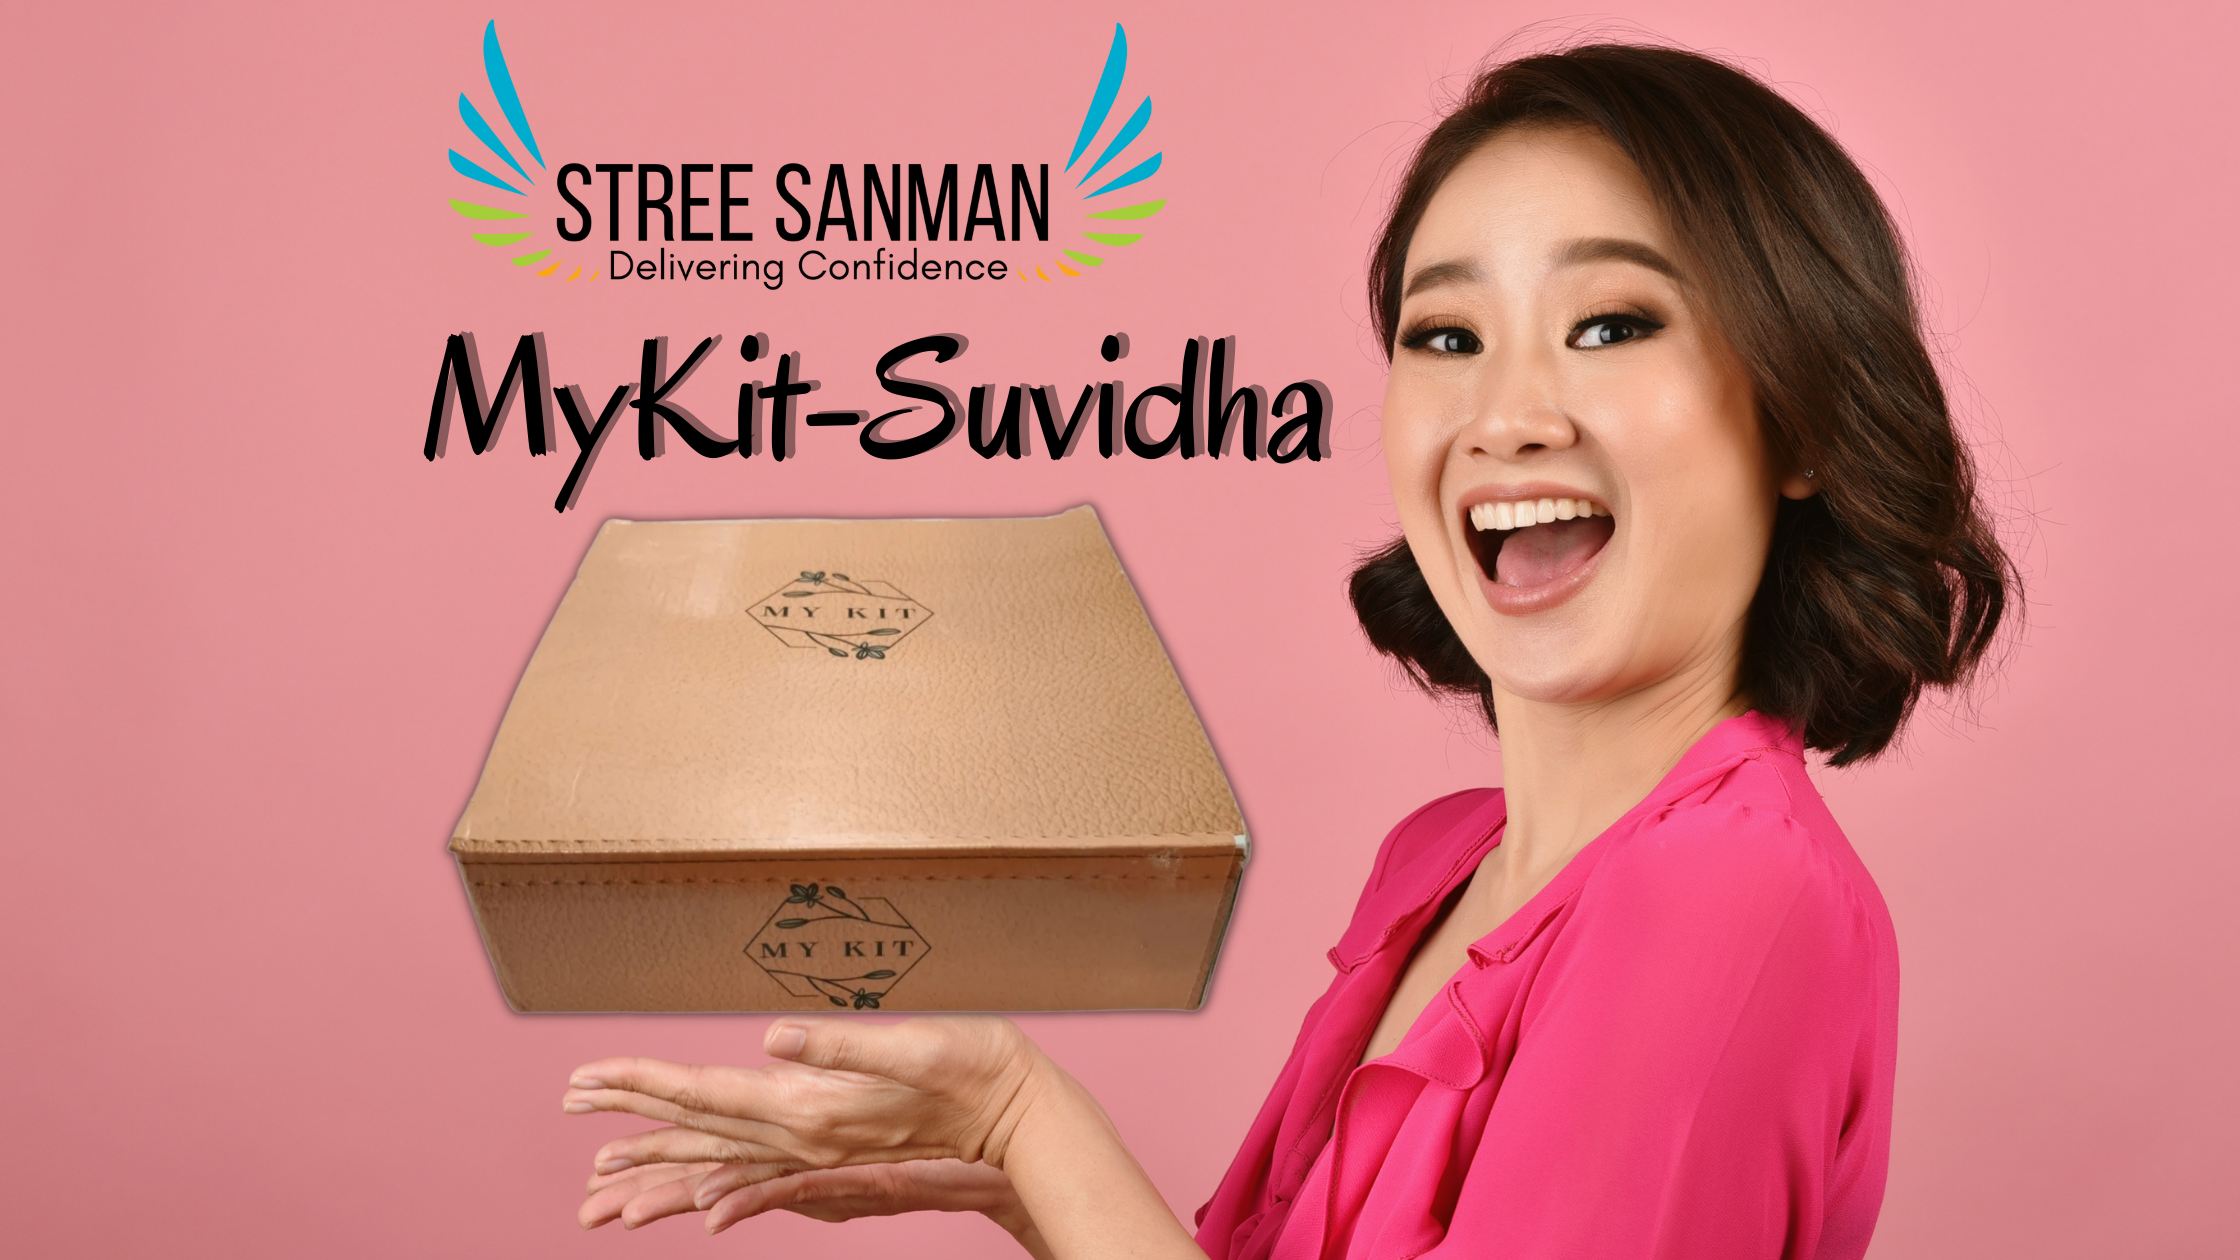 Stree Sanman MyKit-Suvidha a complete menstrual hygiene kit for women during periods.